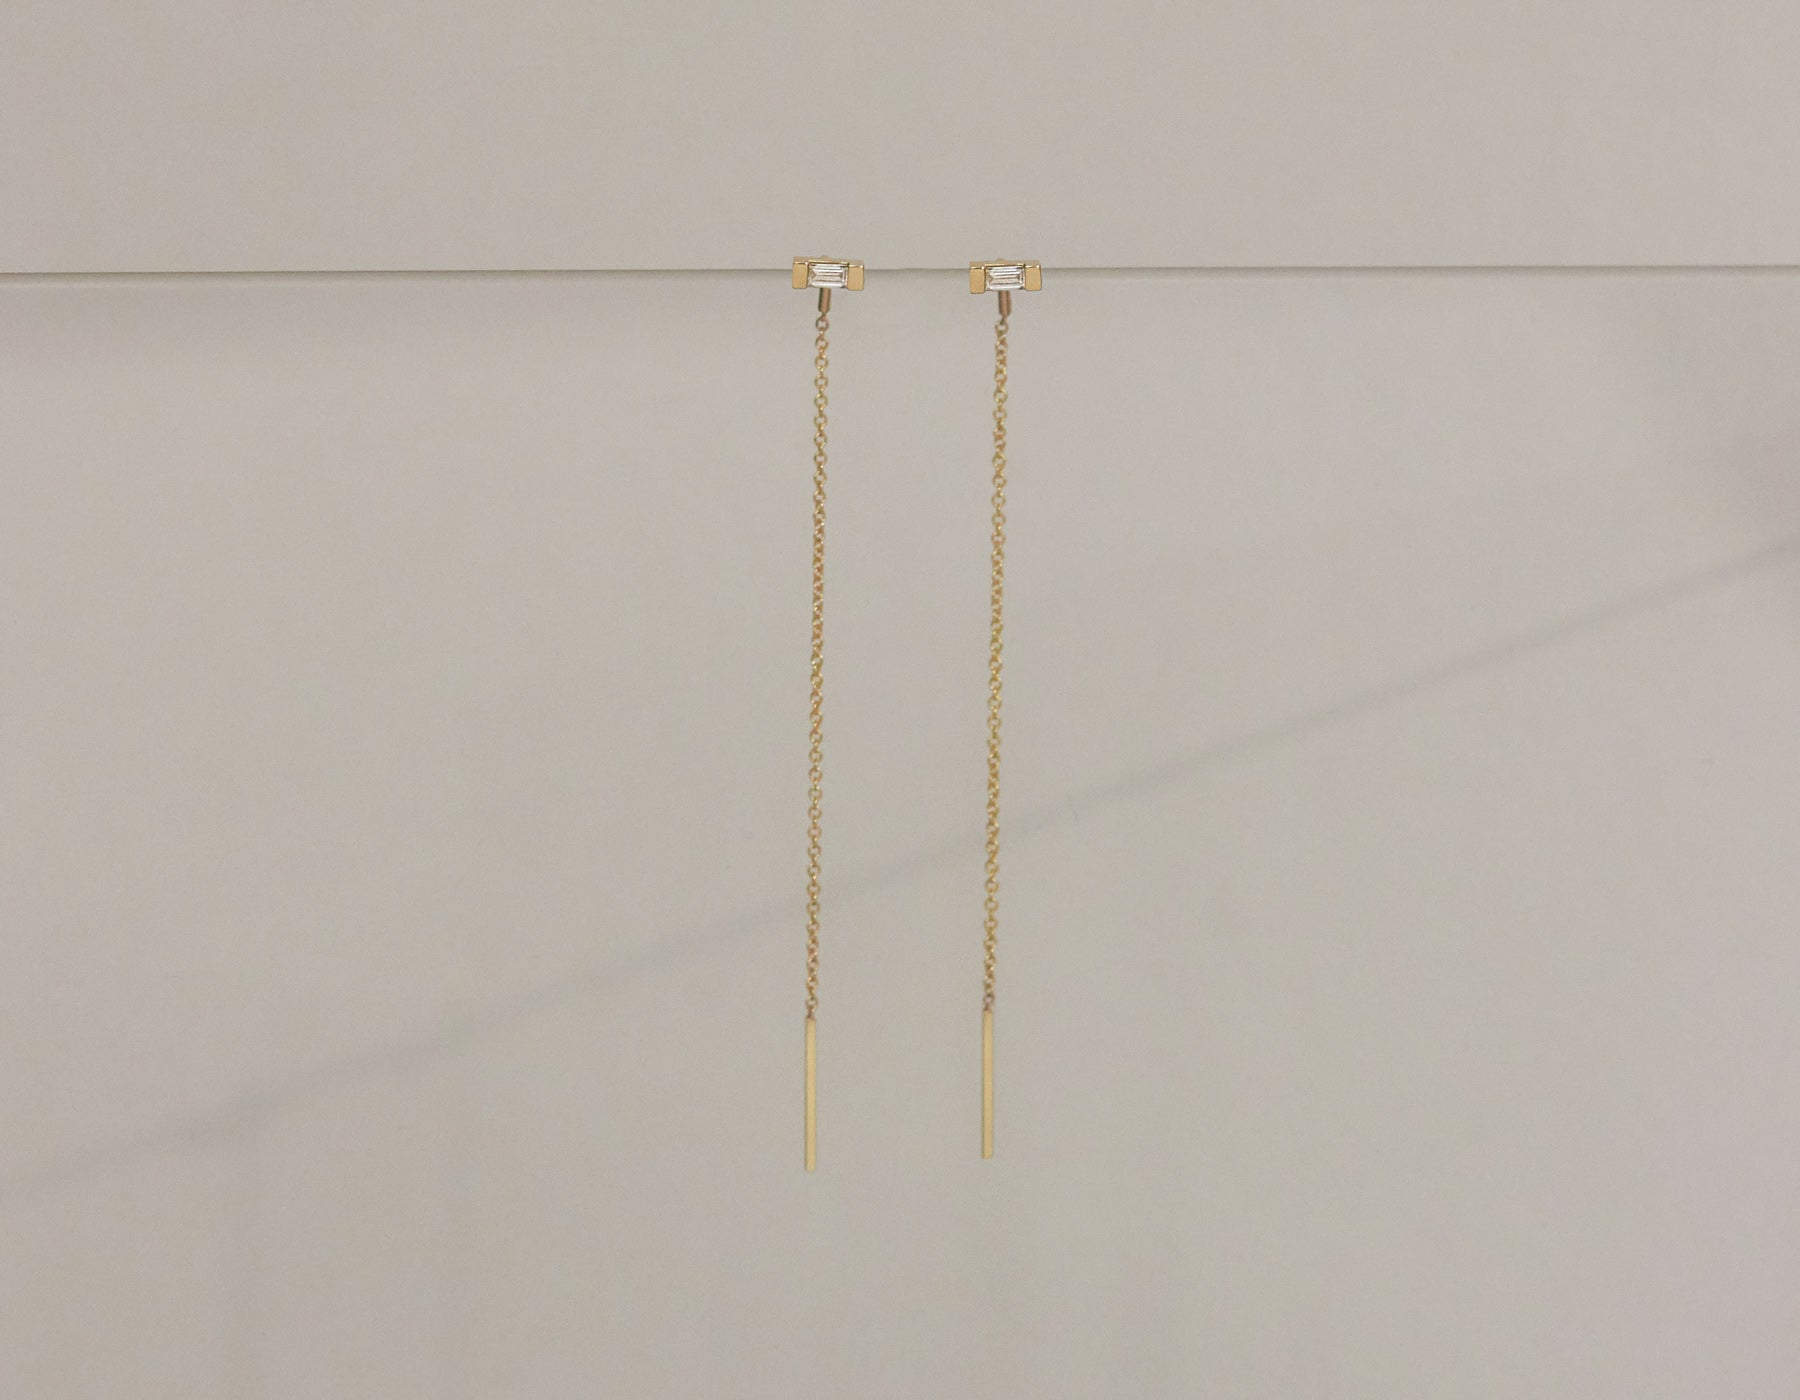 Vrai & Oro 14k solid gold Baguette Diamond Line threaders sustainable minimalist earrings